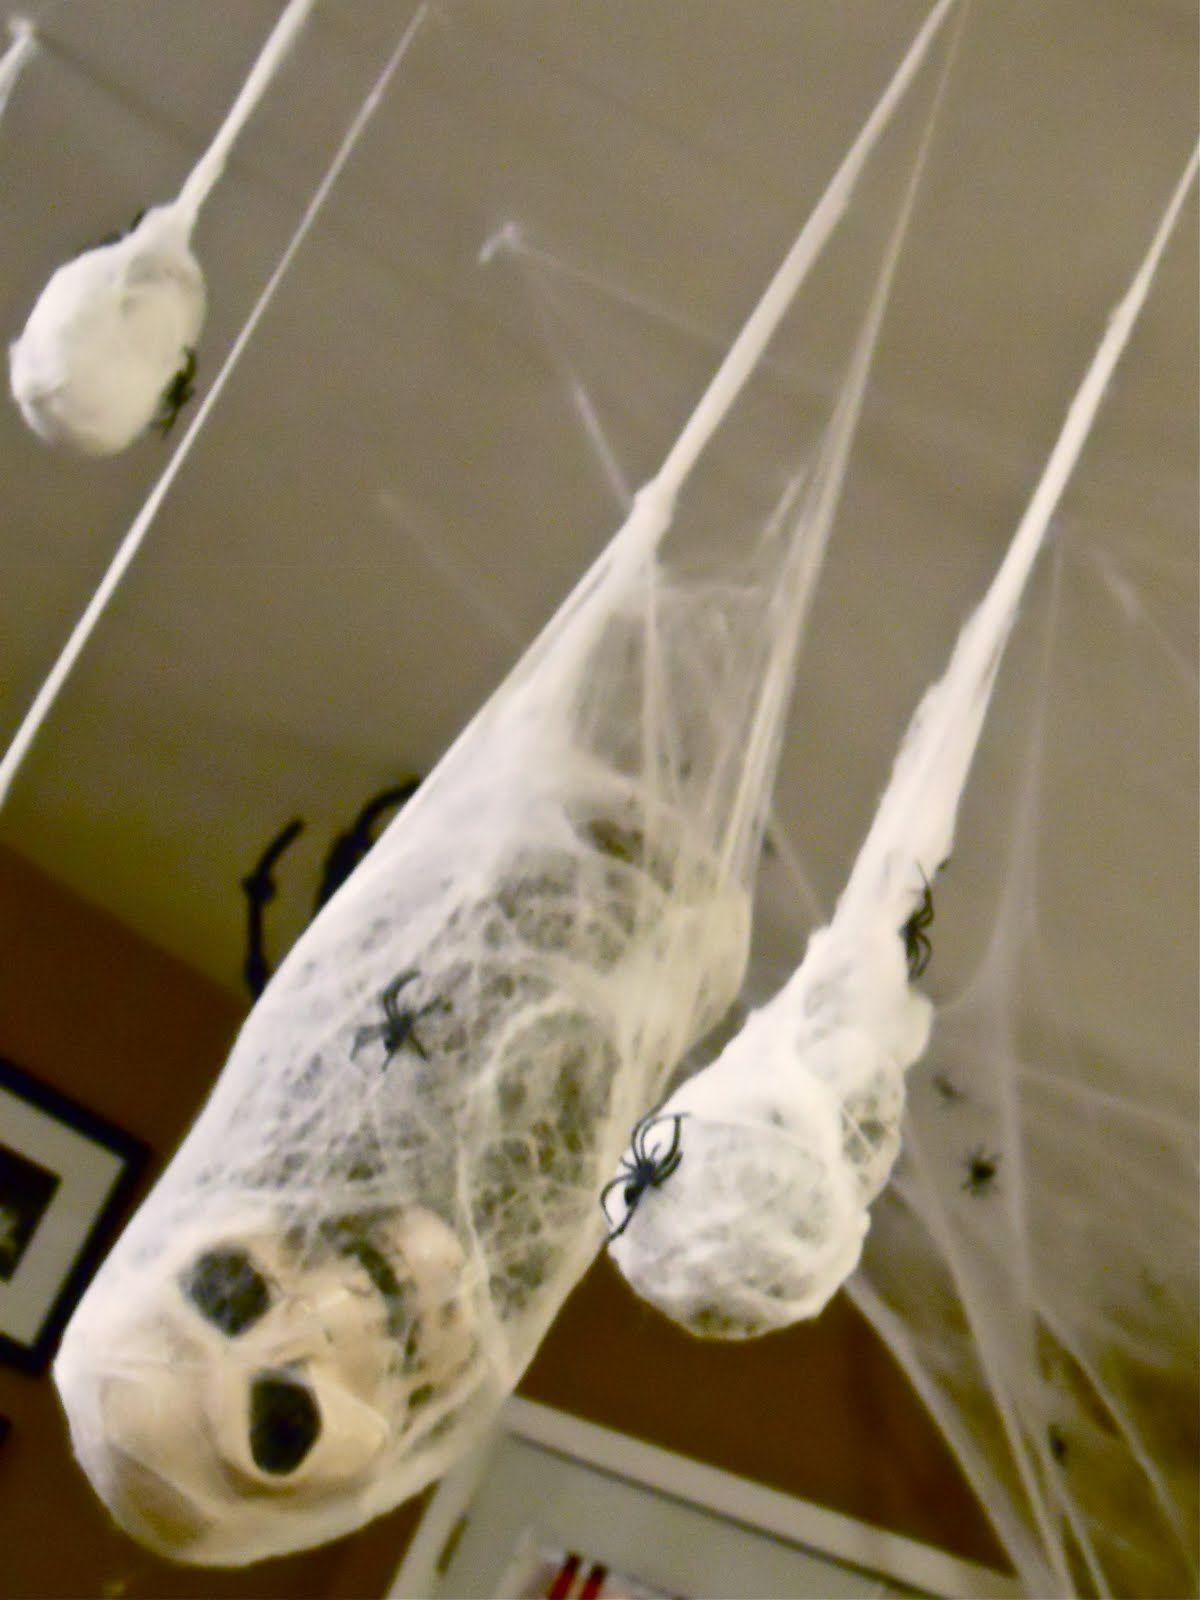 home decorating trends homedit - Scary Homemade Halloween Decorations